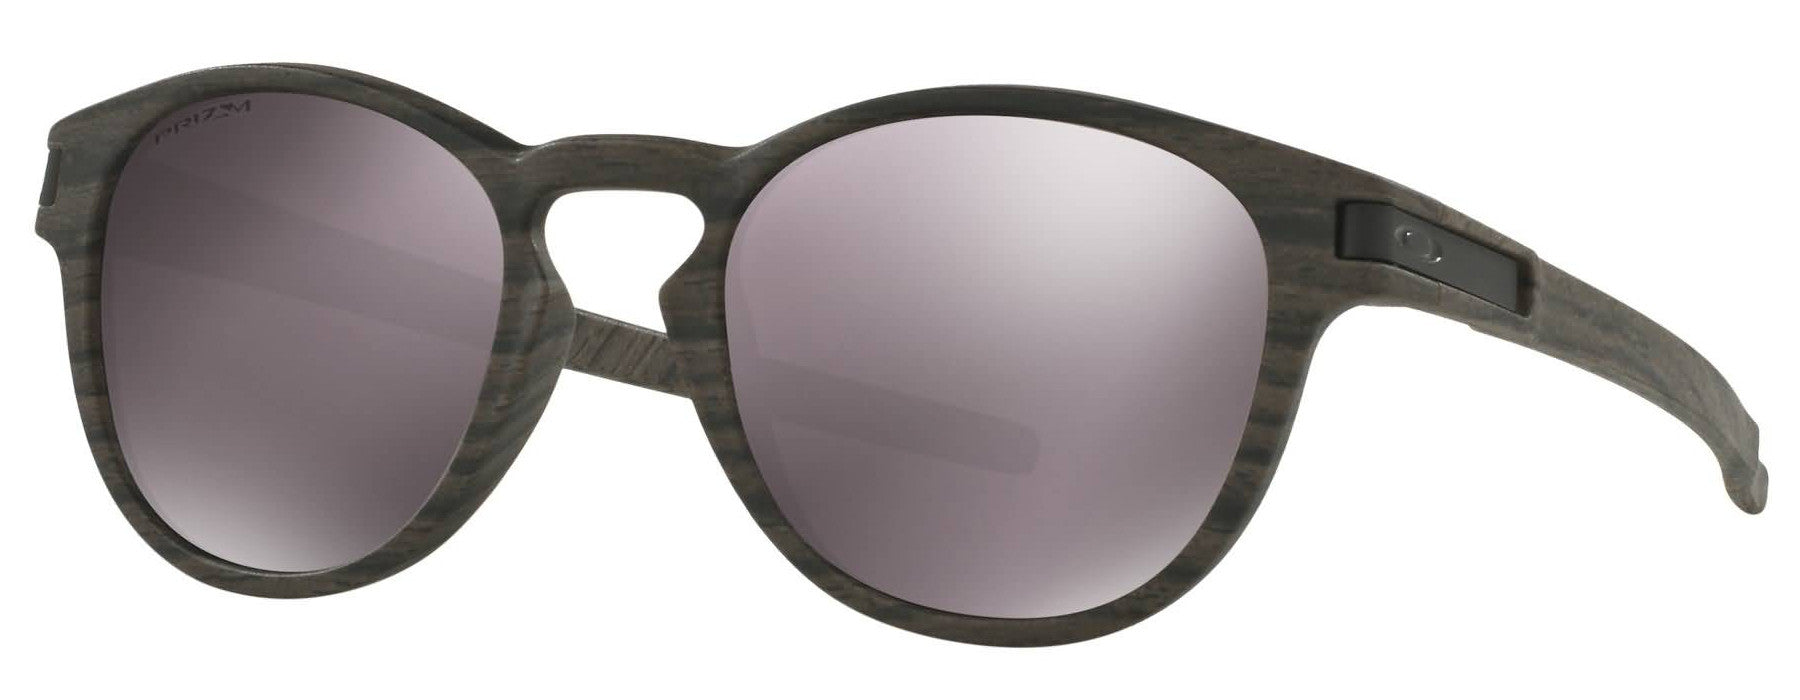 Oakley Introduces The Latch Sunglasses